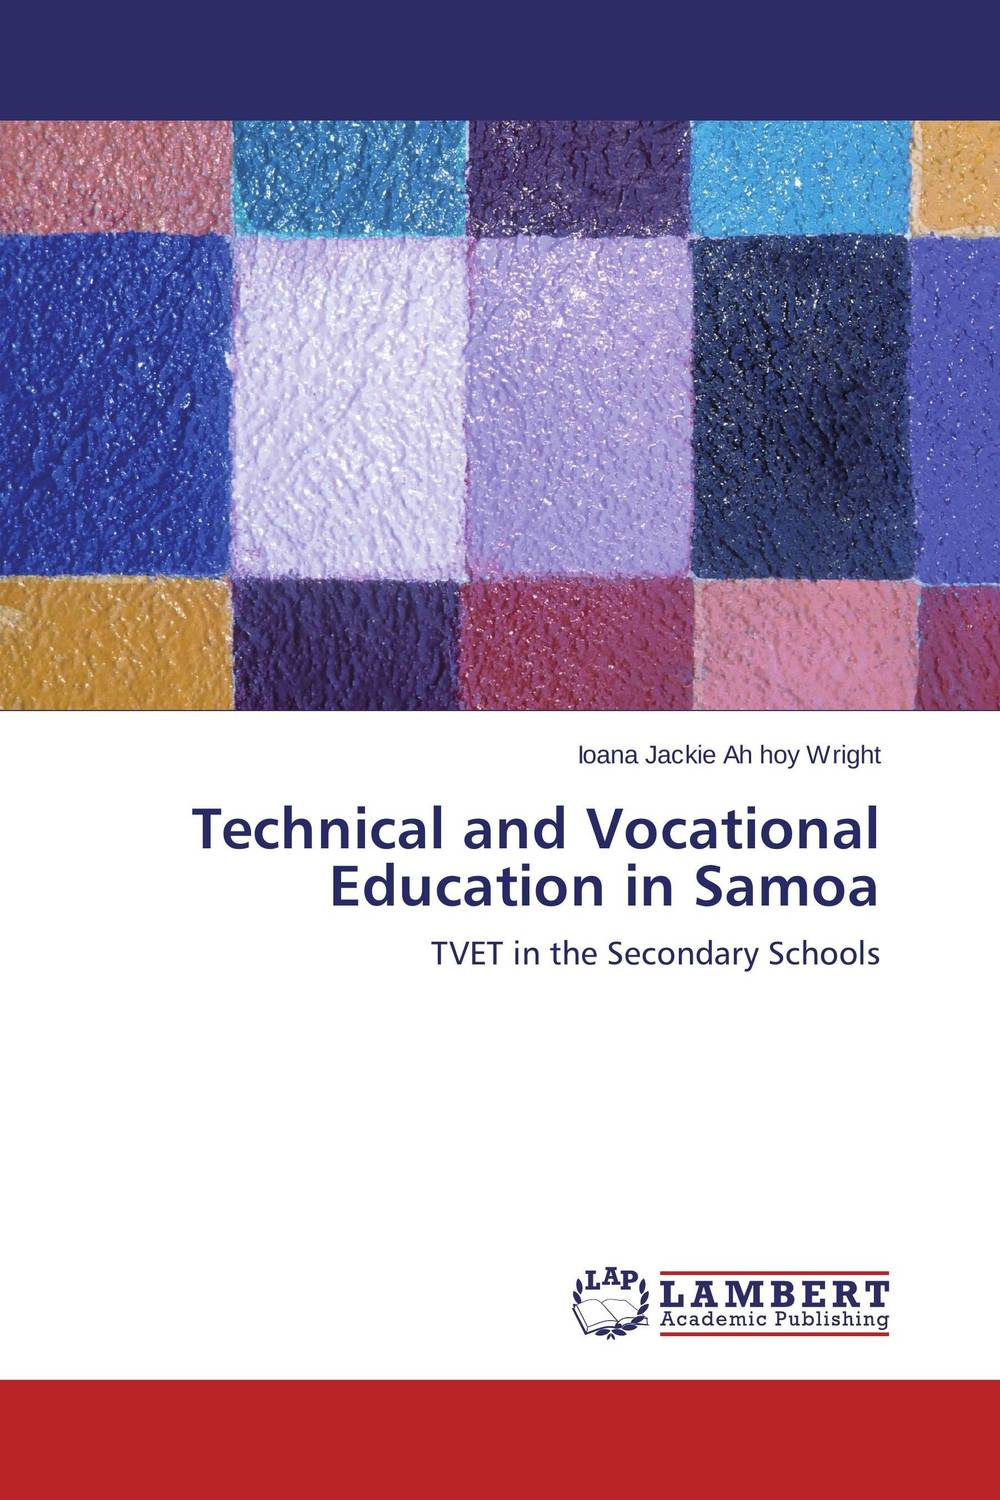 Technical and Vocational Education in Samoa подвесная люстра st luce buld sl299 053 03